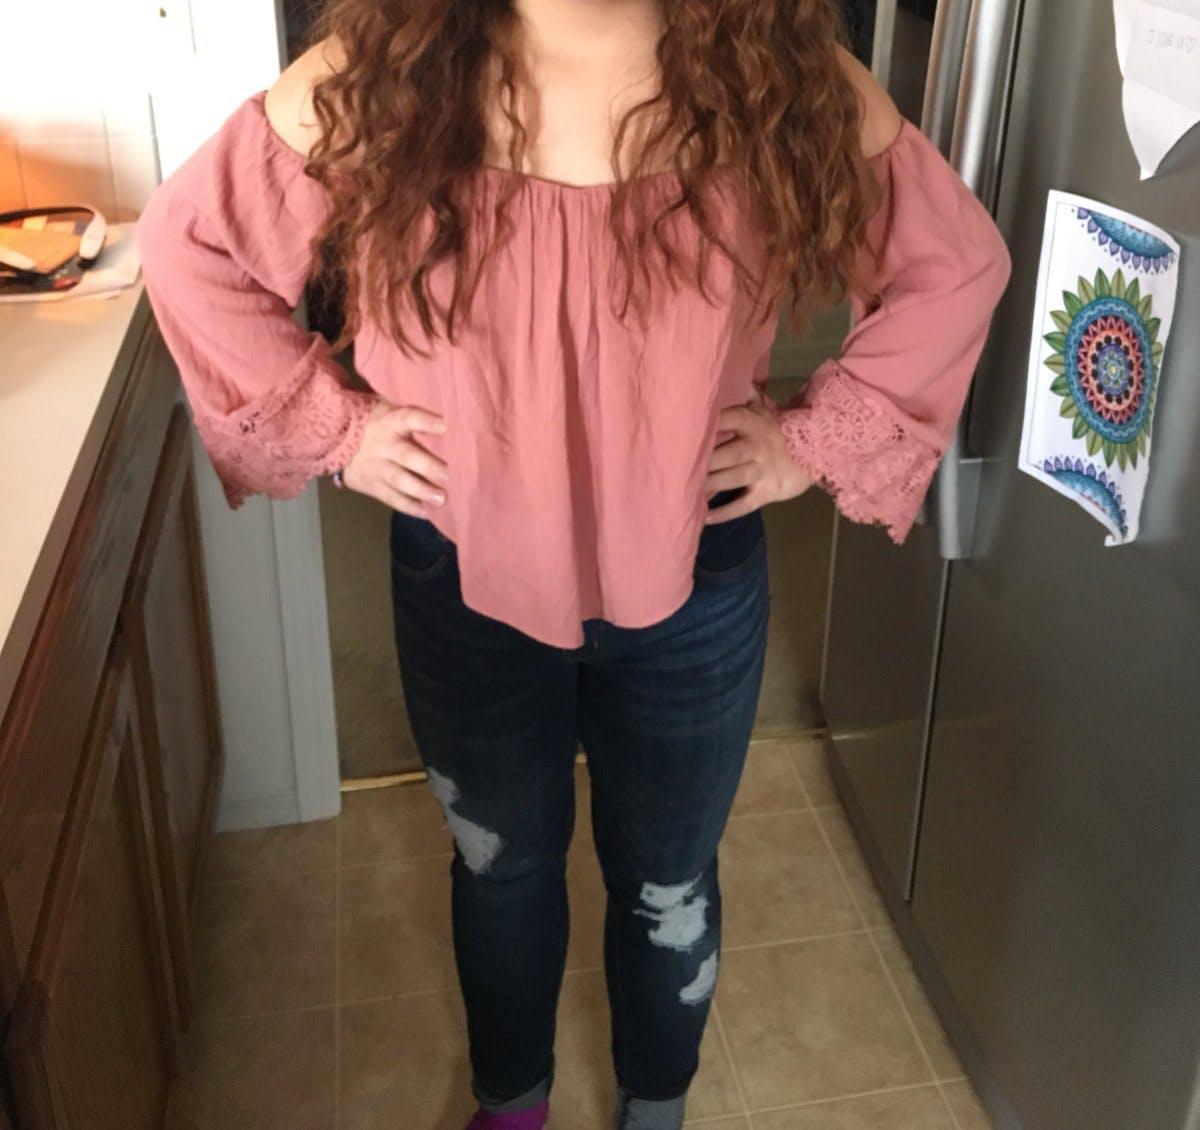 13-year-old Grace Villegas wears a Charlotte Russe top that she received criticism for wearing to school.